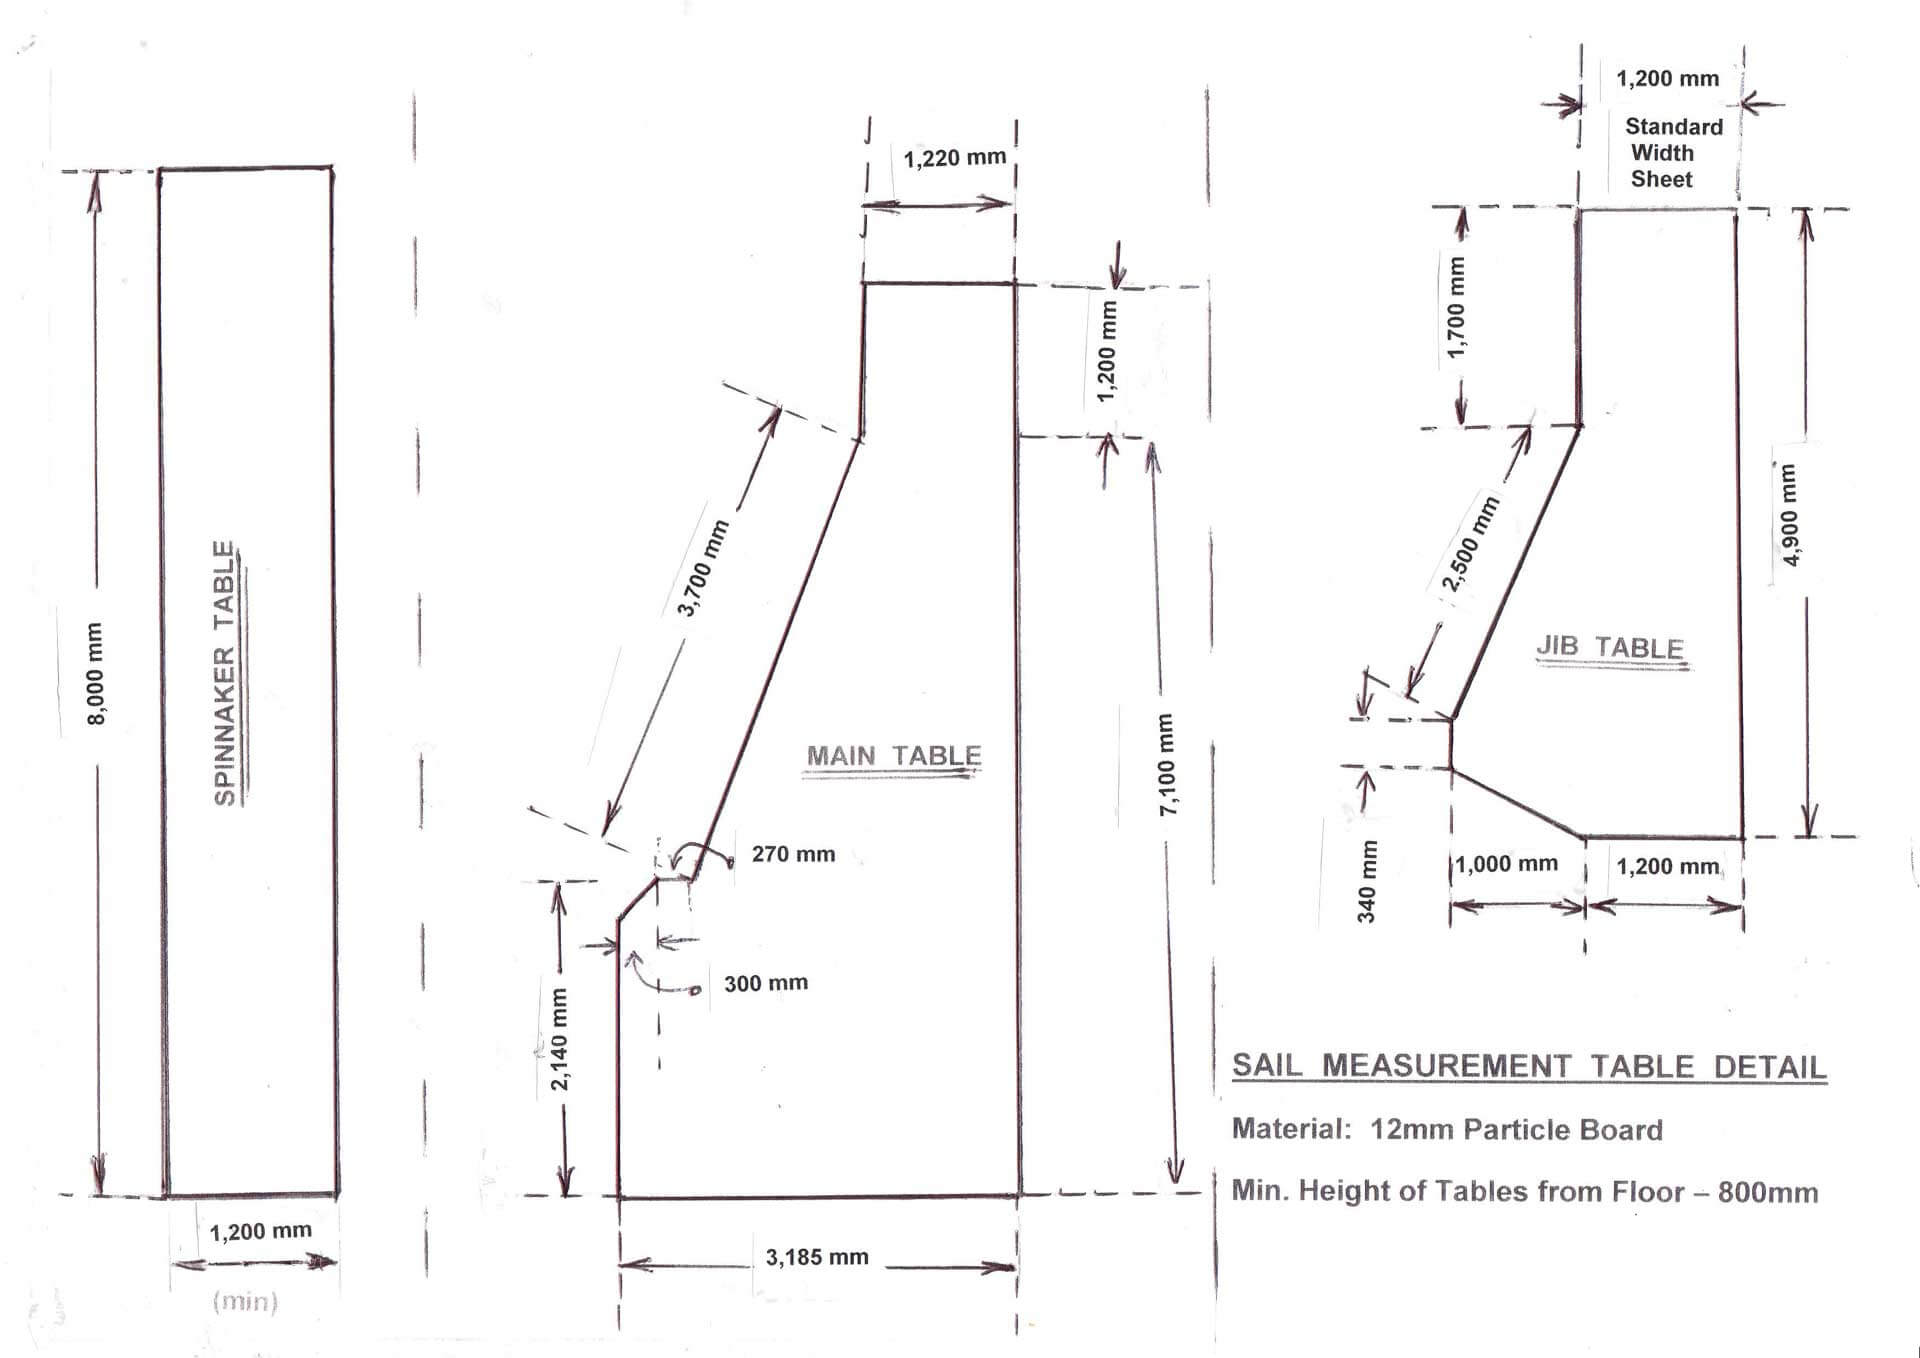 hight resolution of download sail measuring table template